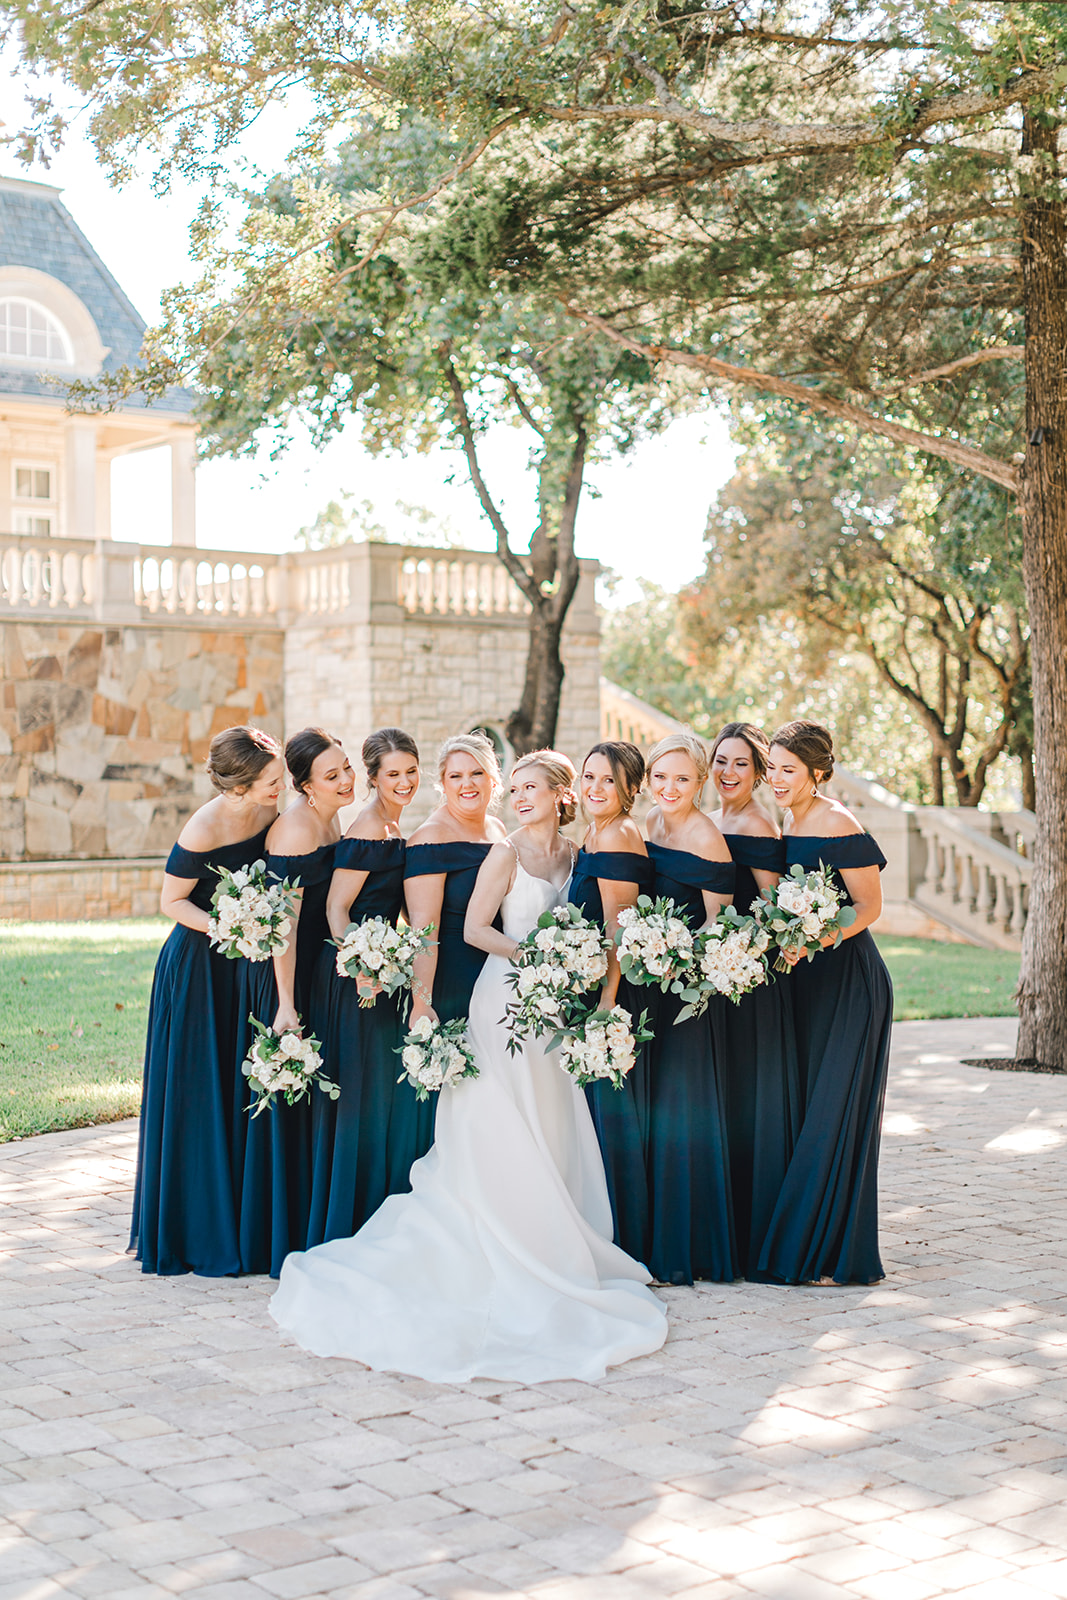 Bridesmaid dress design: Timeless Wedding at The Olana featured on Alexa Kay Events!